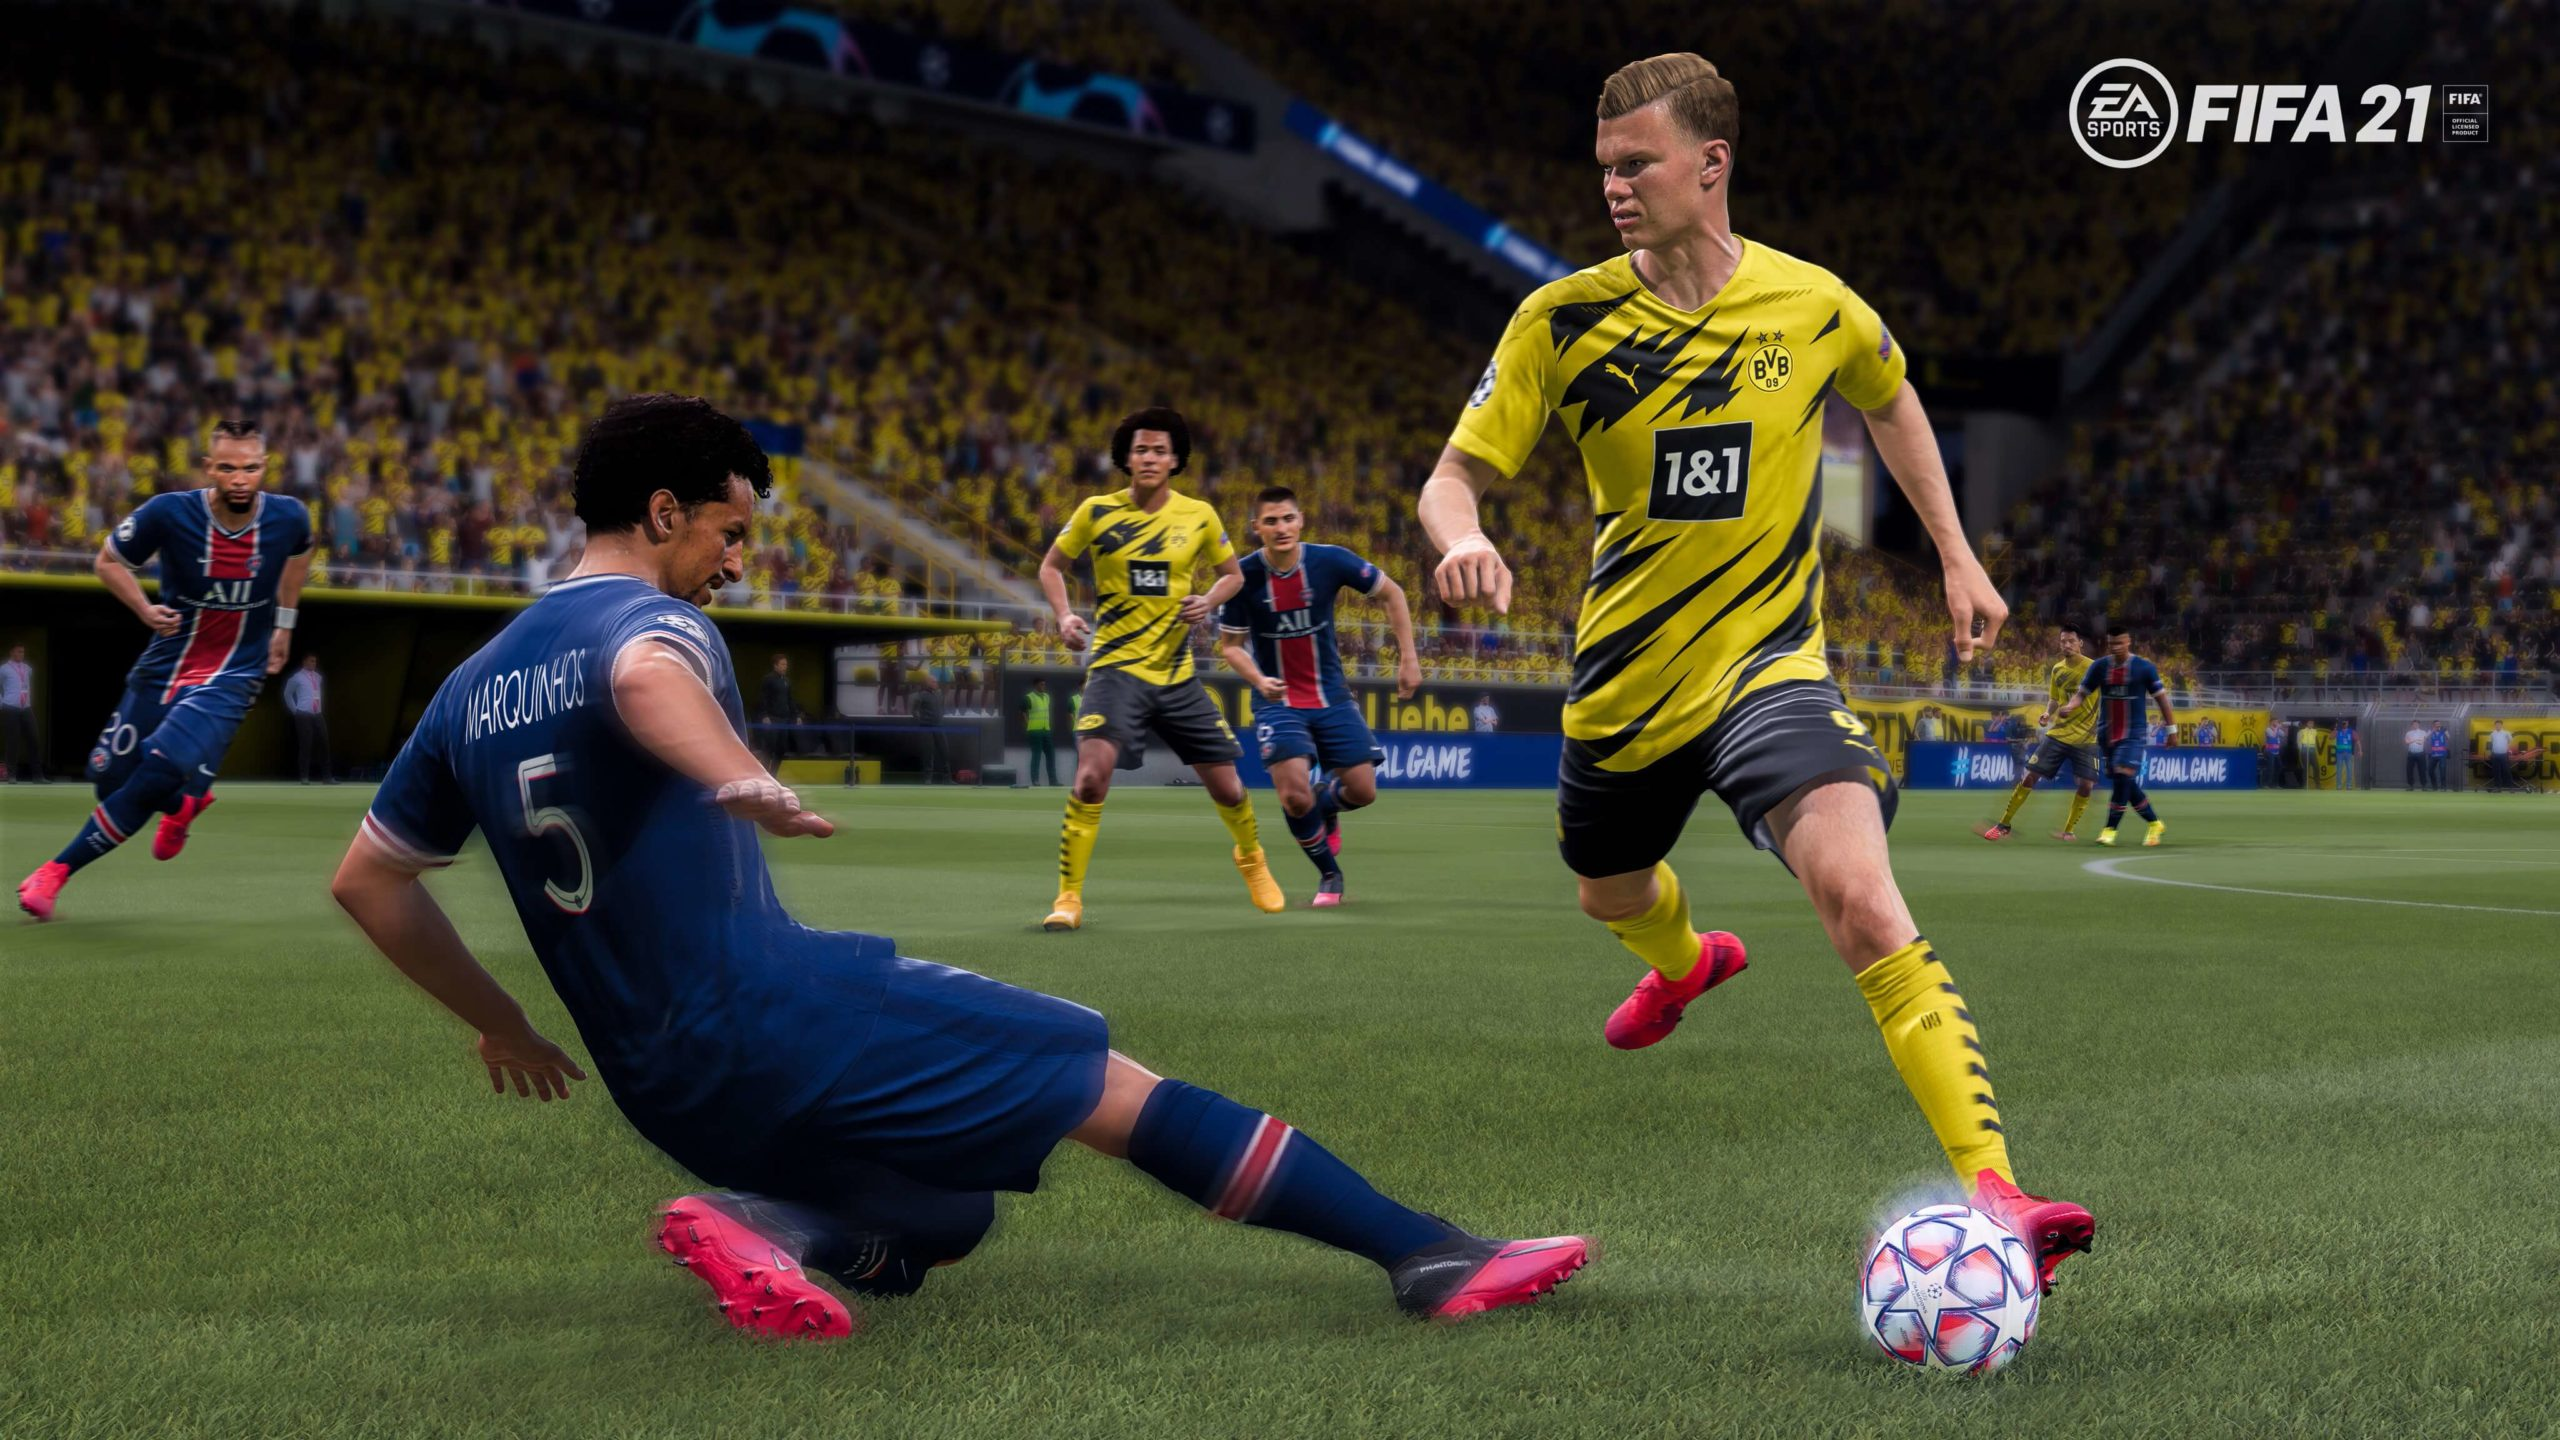 FIFA 21: Haland gameplay screenshot